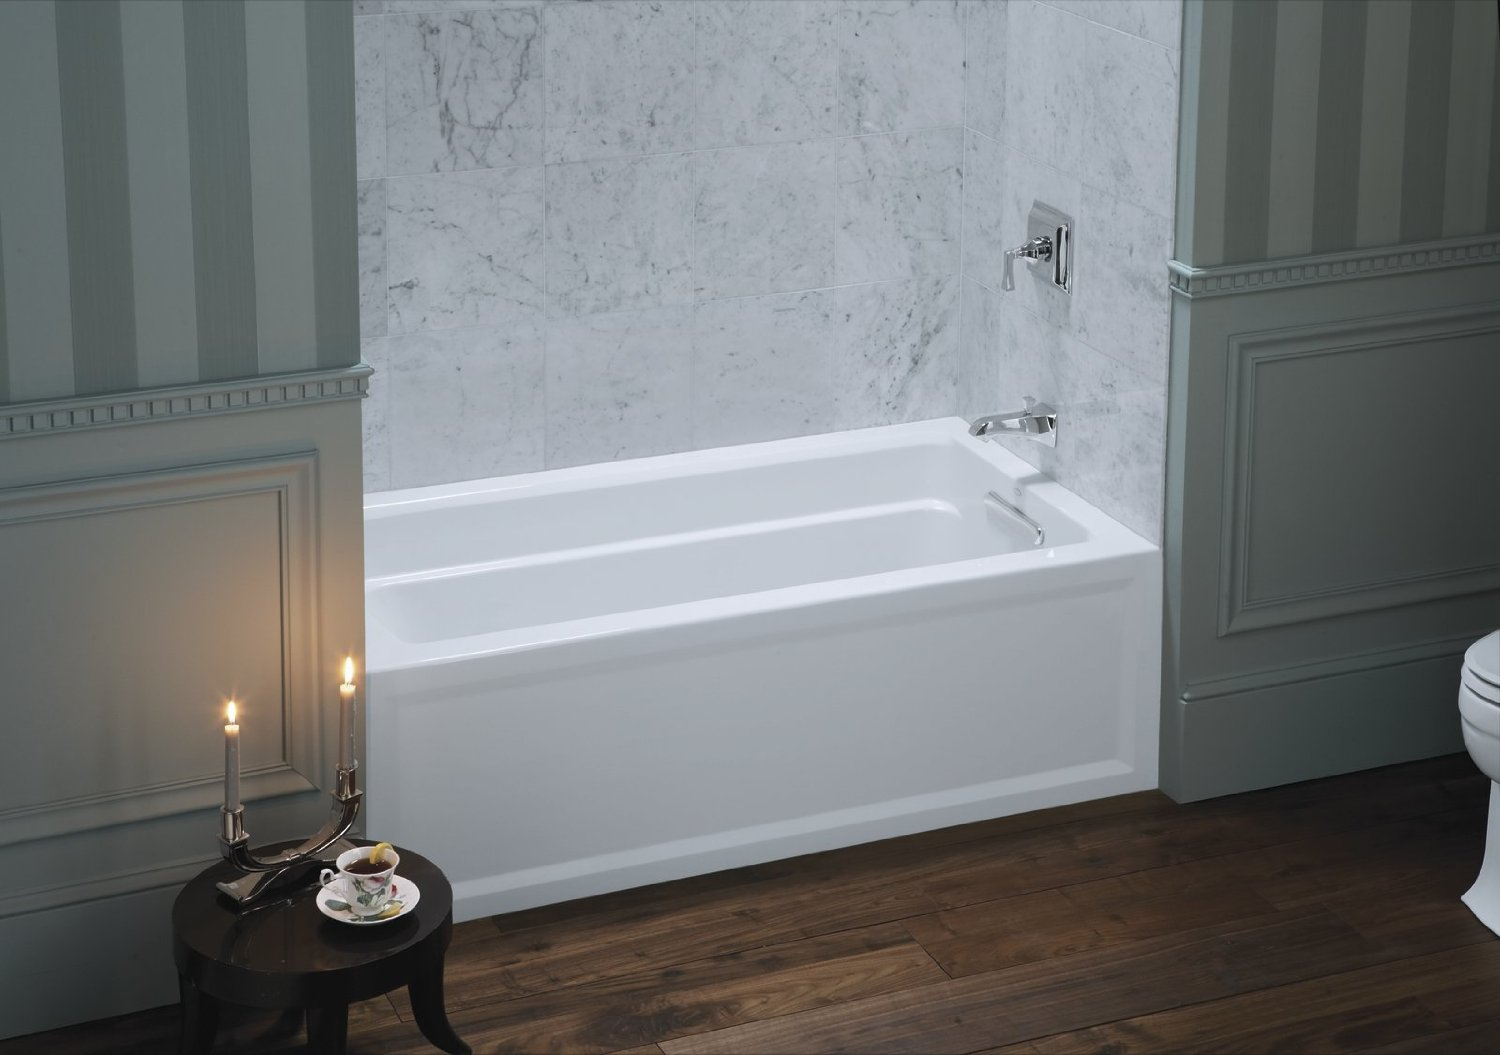 Kohler Tub And Shower : tub is not ordinary tub that you often imagine of tub for bathroom ...